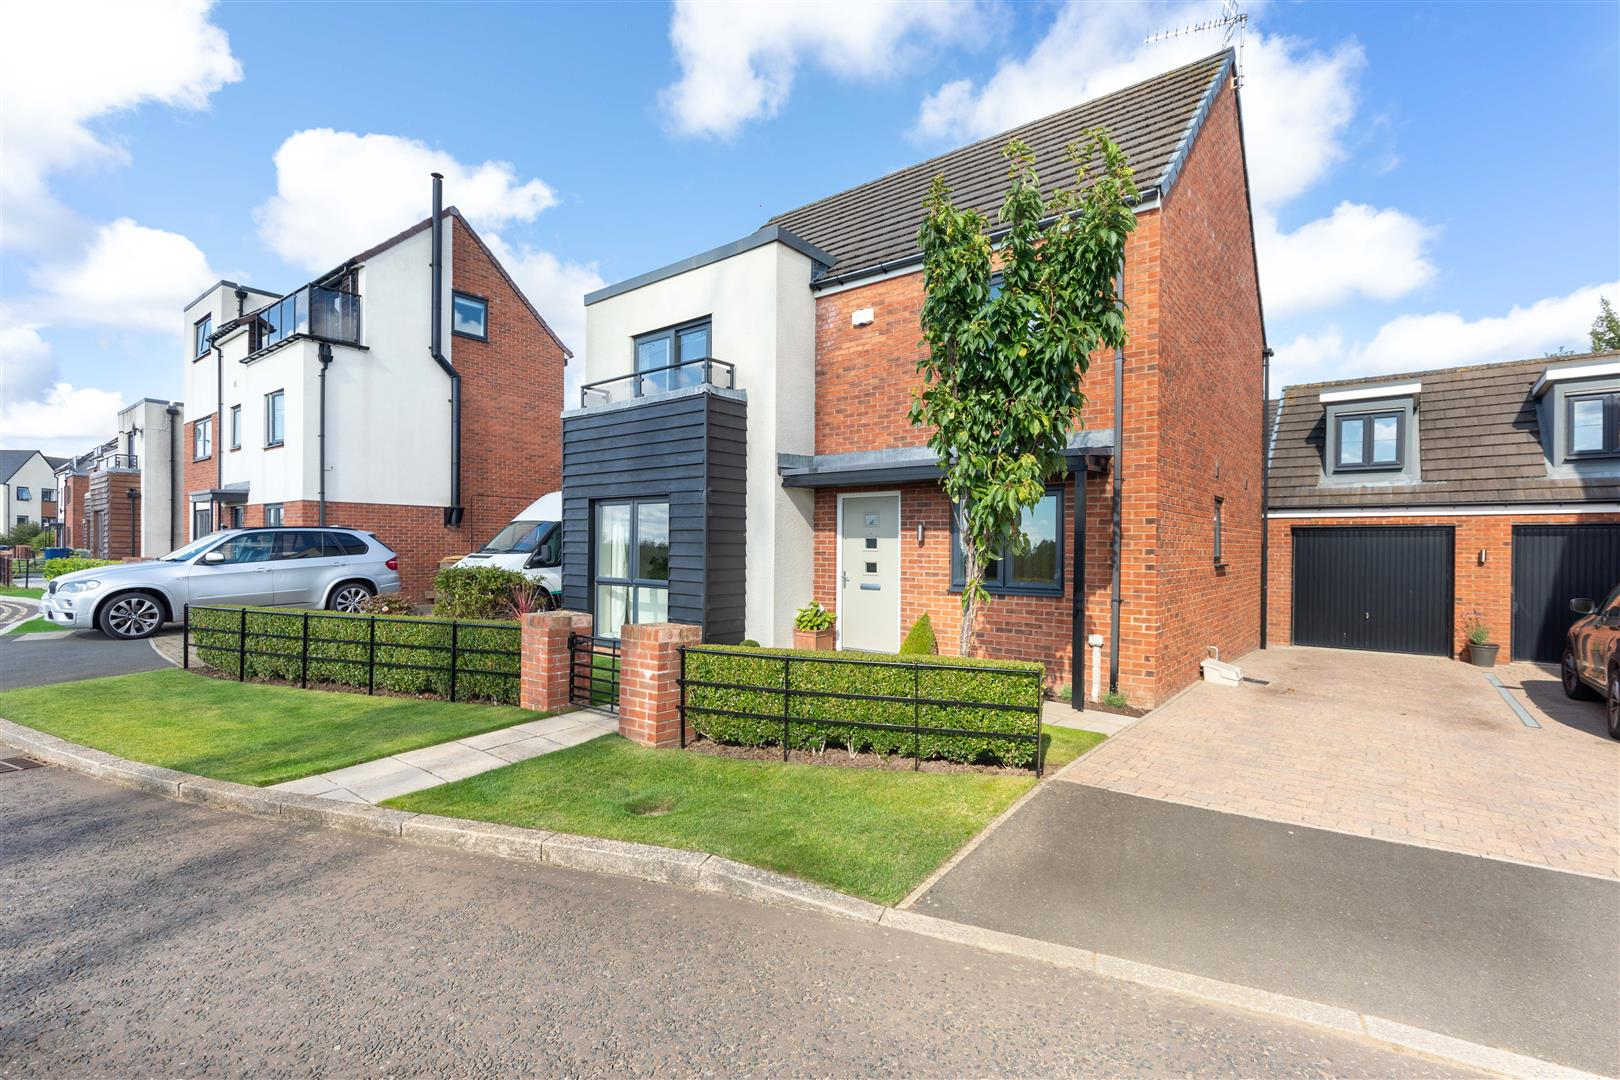 4 bed detached house for sale in Prendwick Avenue, Great Park  - Property Image 1